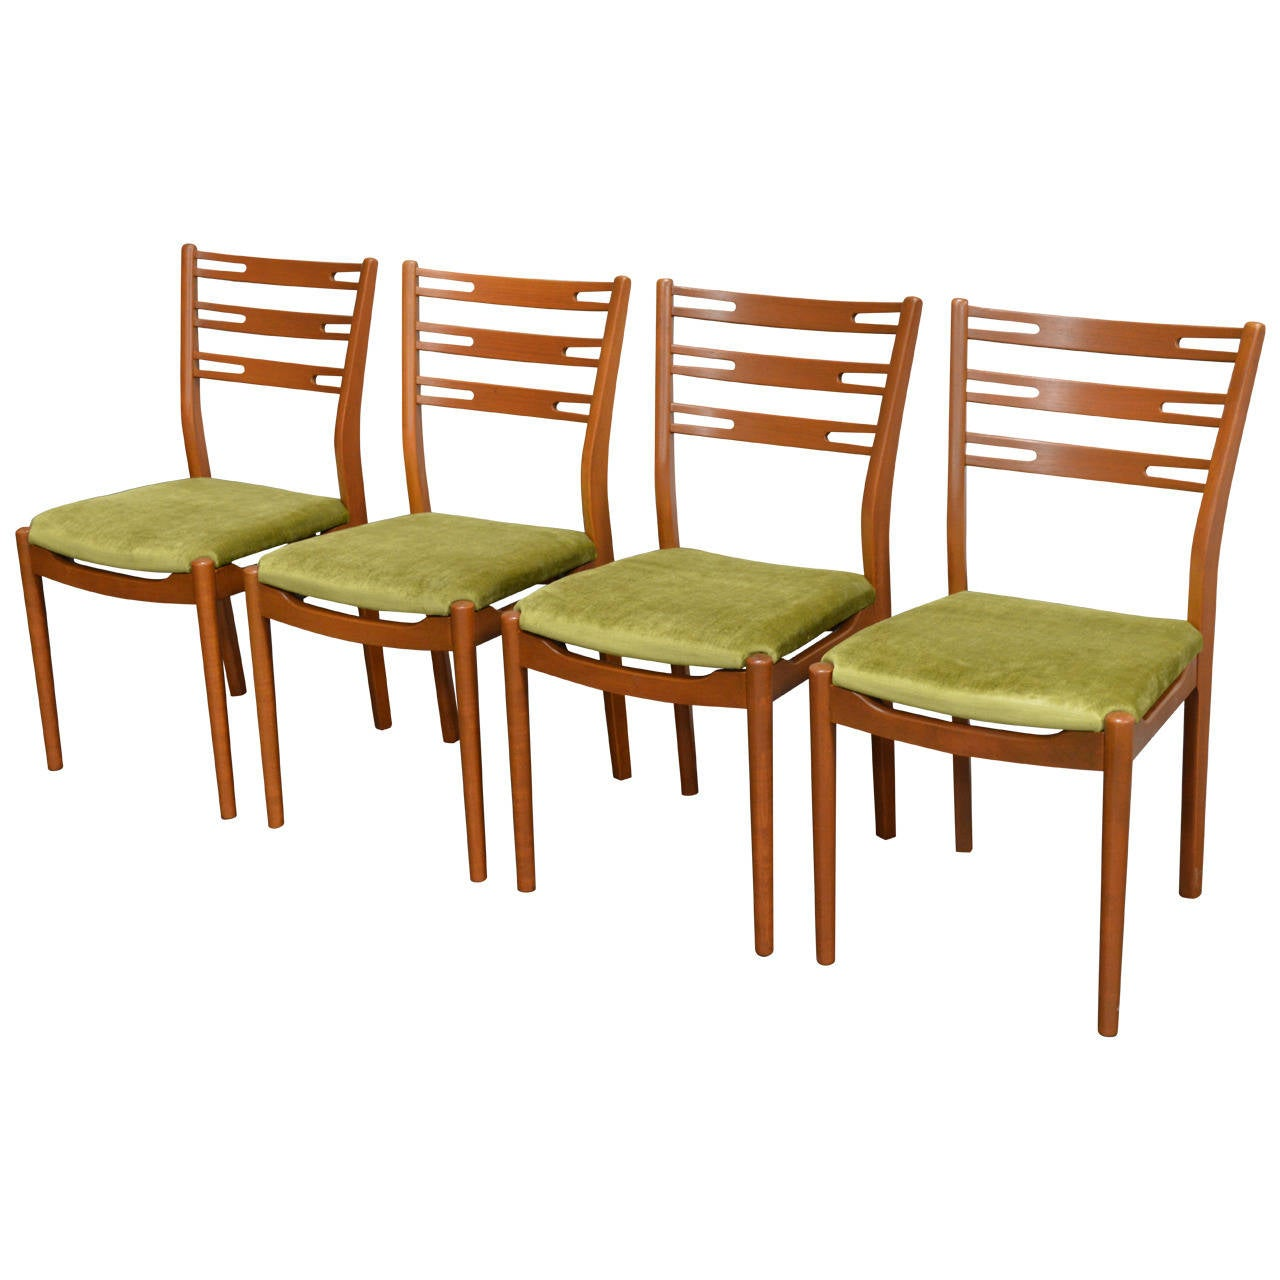 Mid Century Dining Chair Set Of Four Swedish Mid Century Modern Teak Dining Chairs